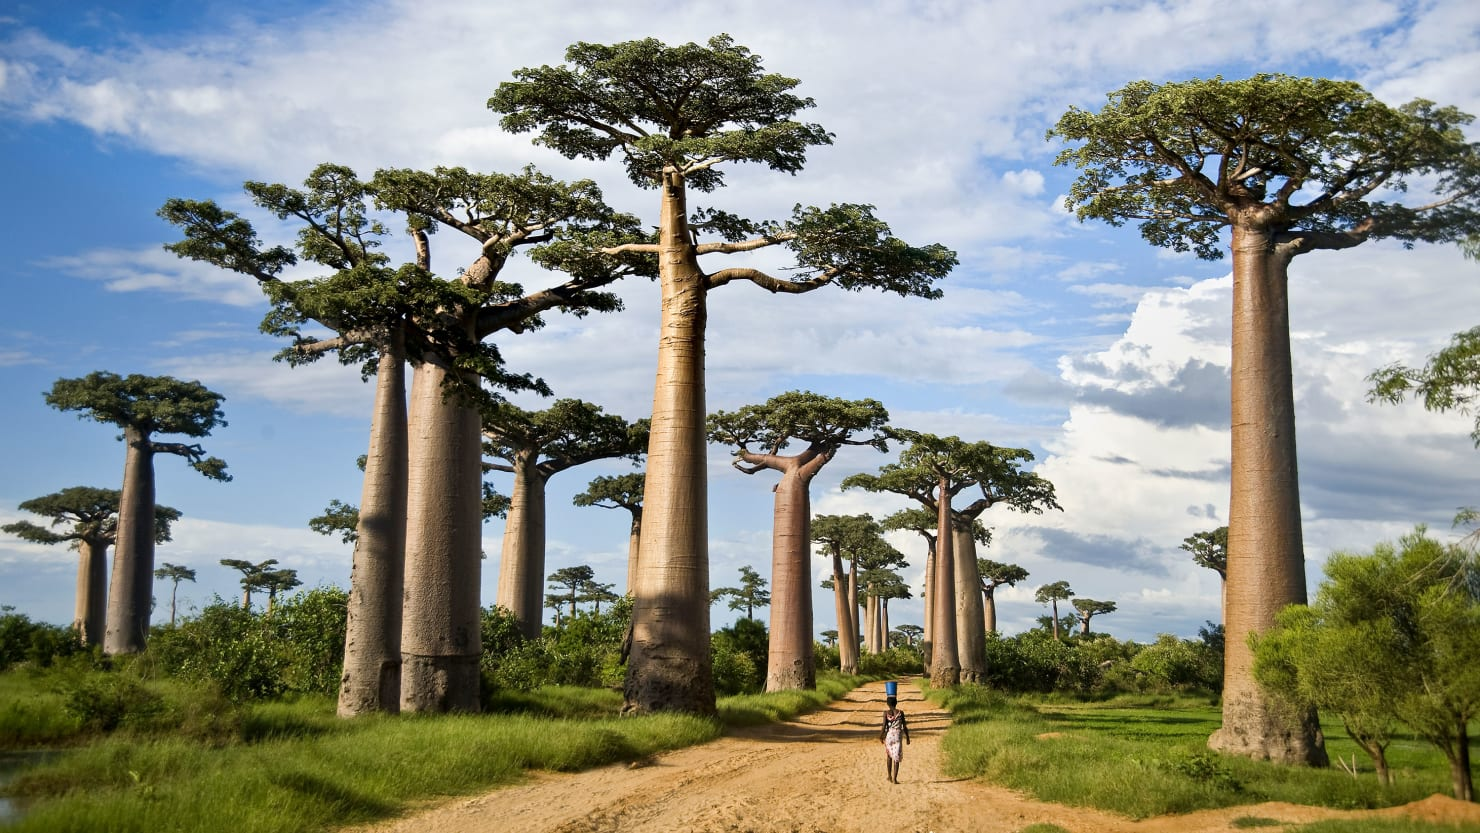 thedailybeast.com - Meera Dattani - Can Tourism Save Madagascar Before It Destroys Itself?